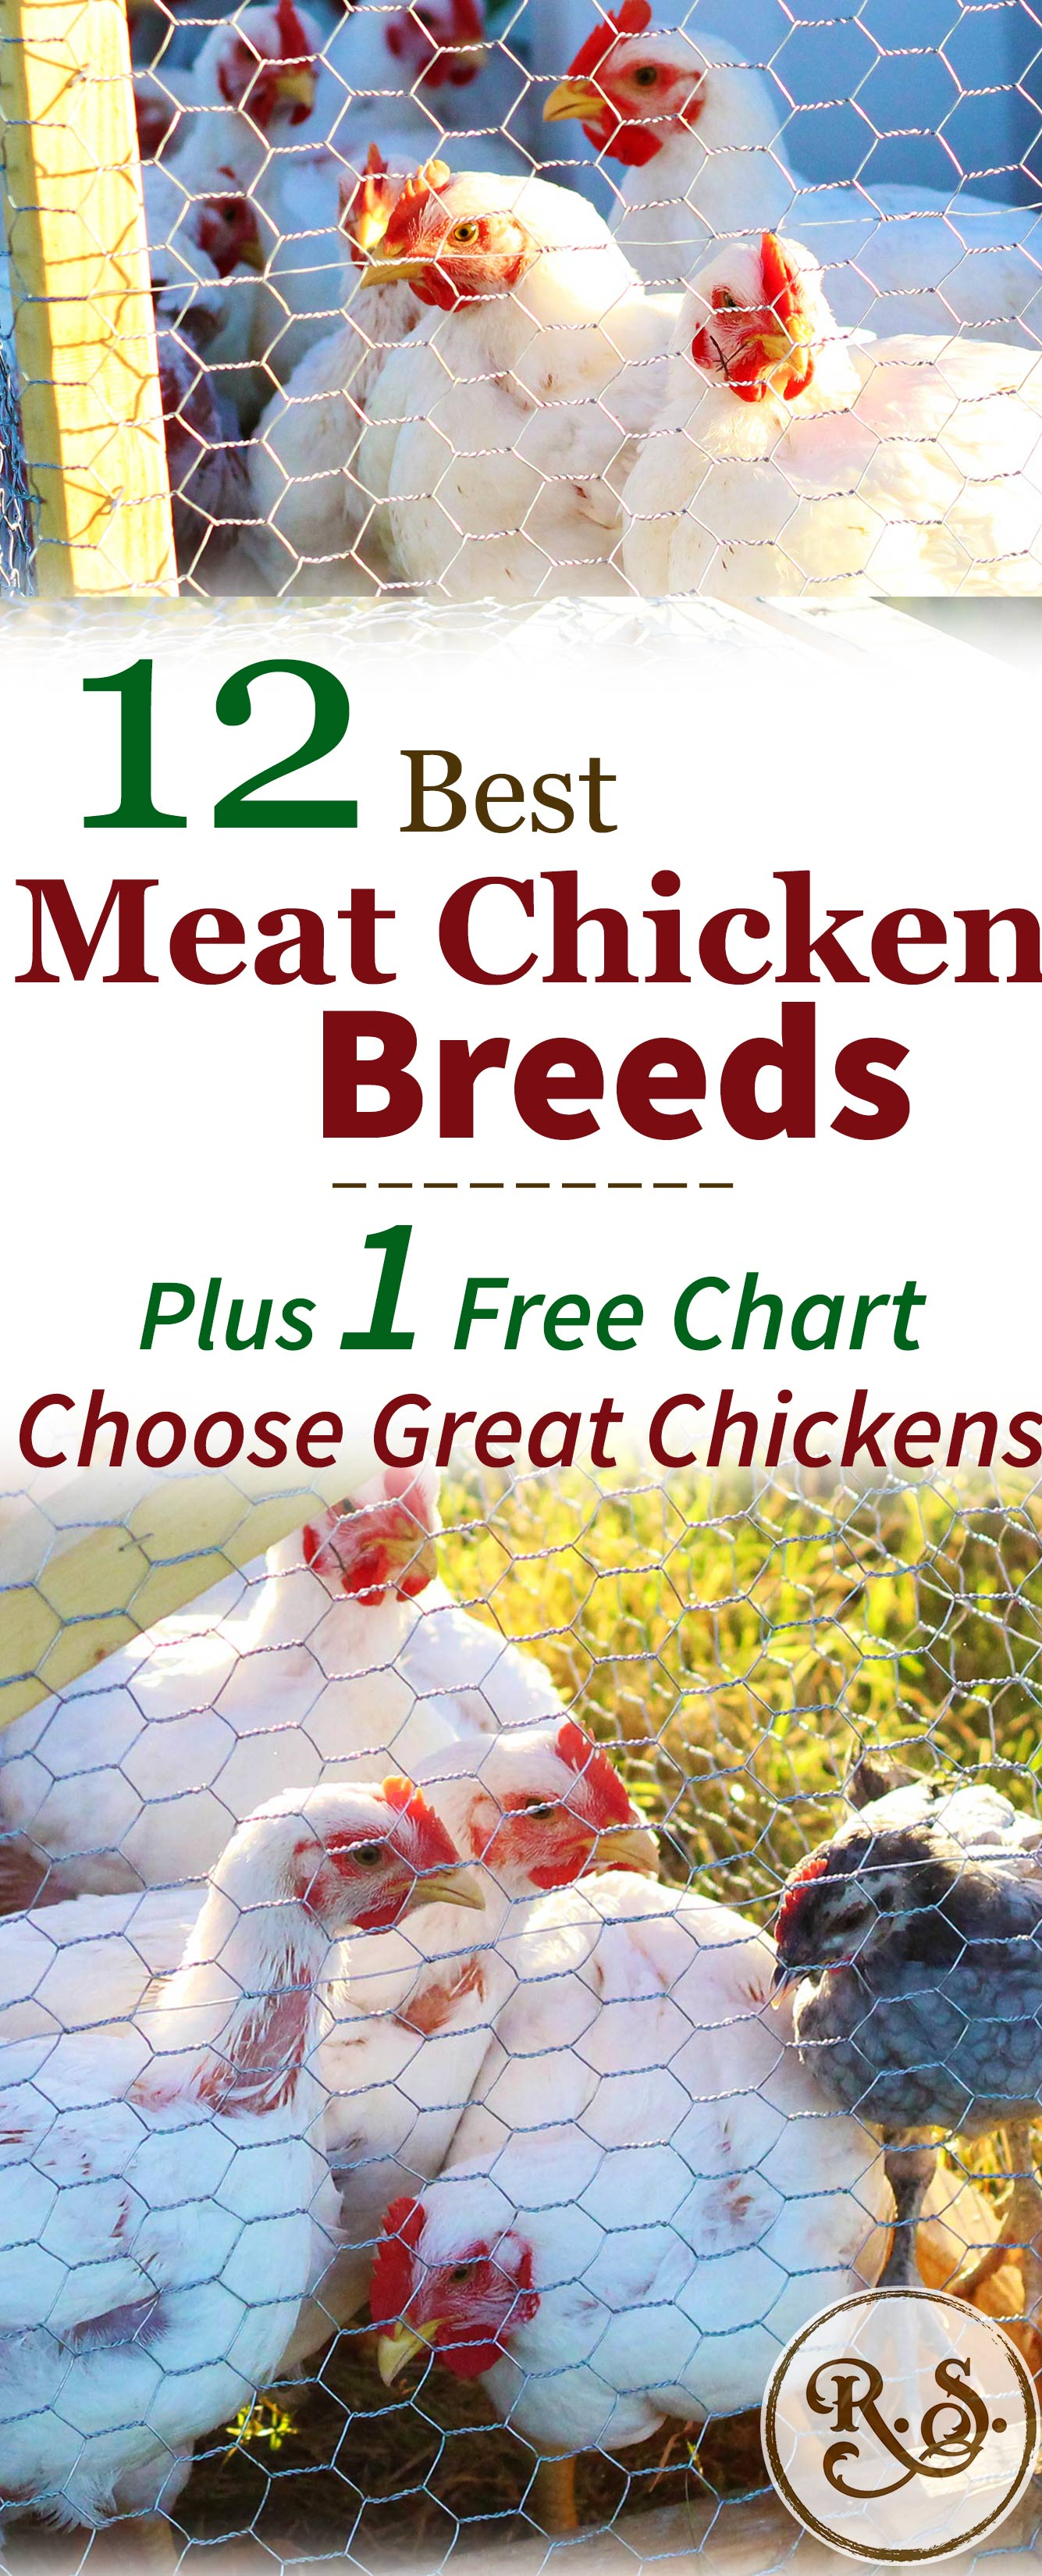 Here are 12 of the best meat chicken breeds for raising on your homestead. A great list for beginners who are looking to raise broilers. Both cross-bred & heritage breeds are compared here.